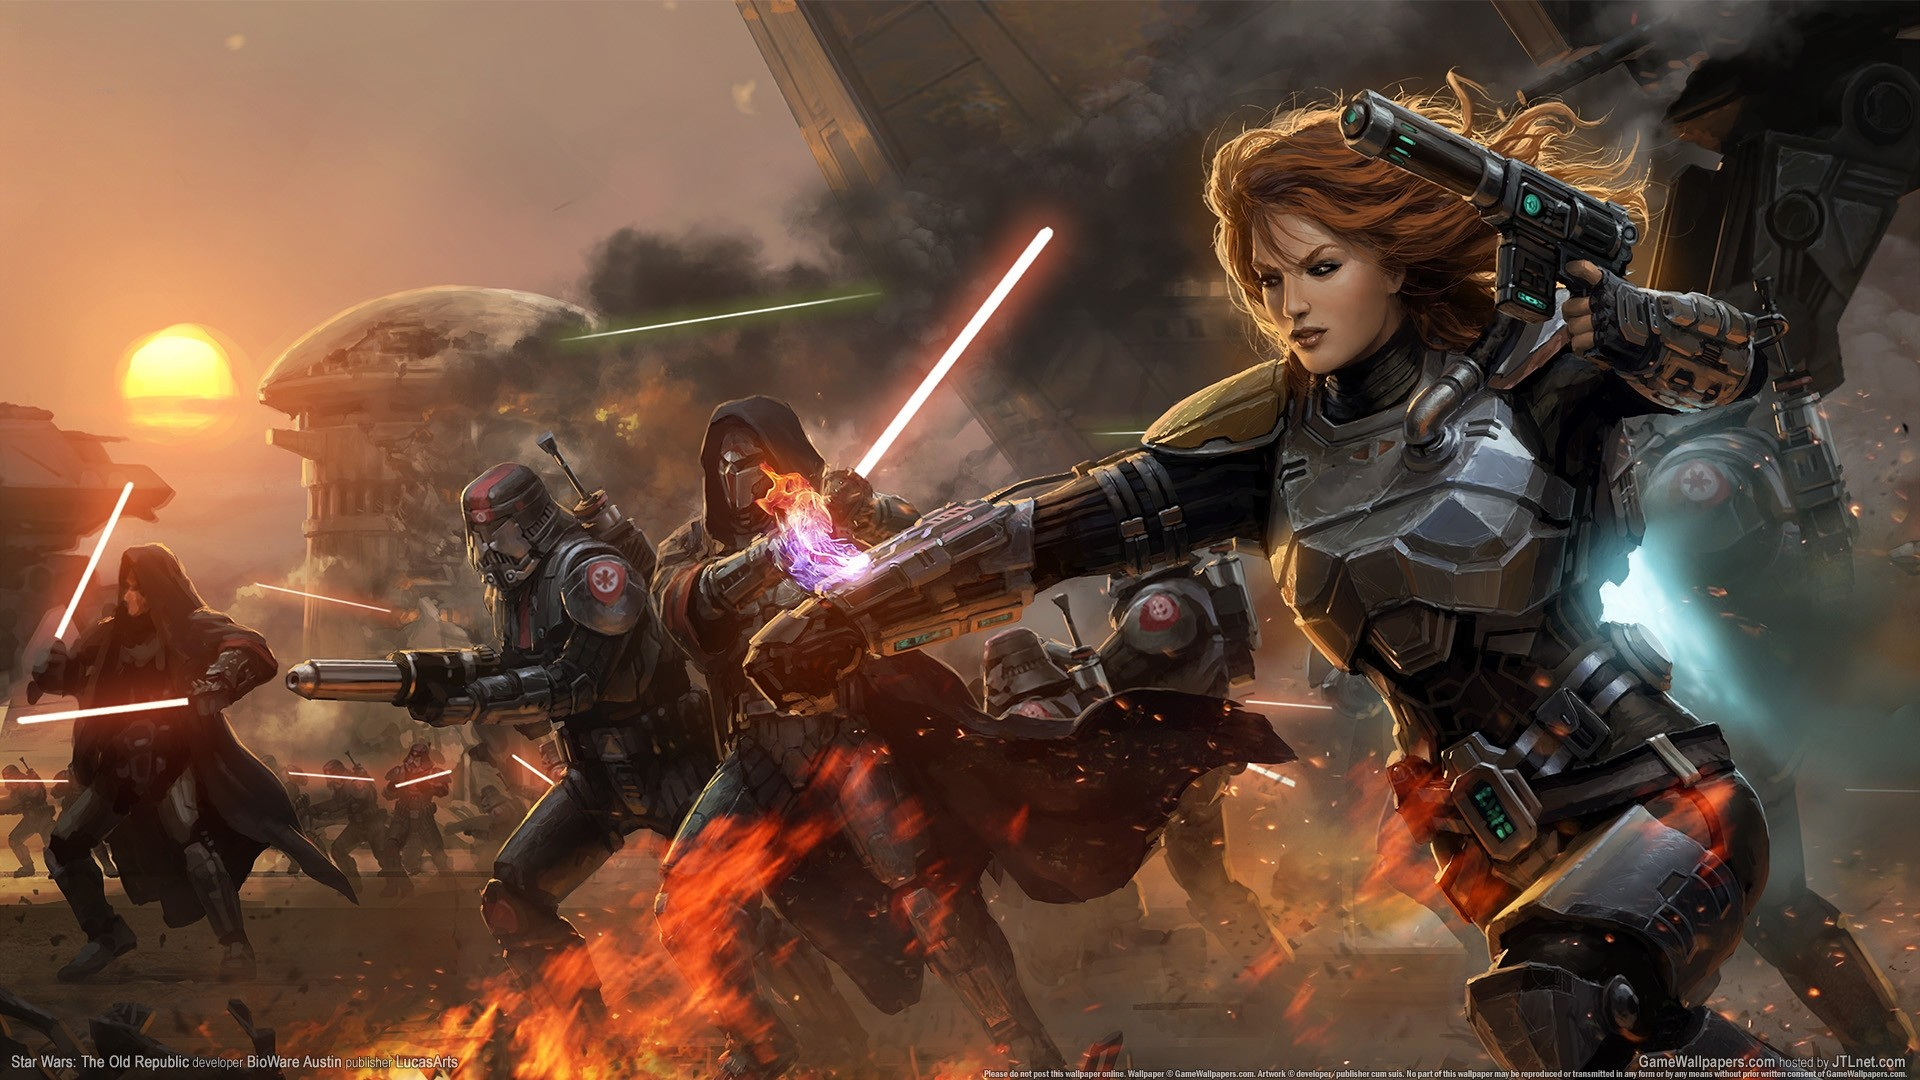 1920x1080 5 knights of the old republic wallpaper | wallpaper tags | Wallpaper Better